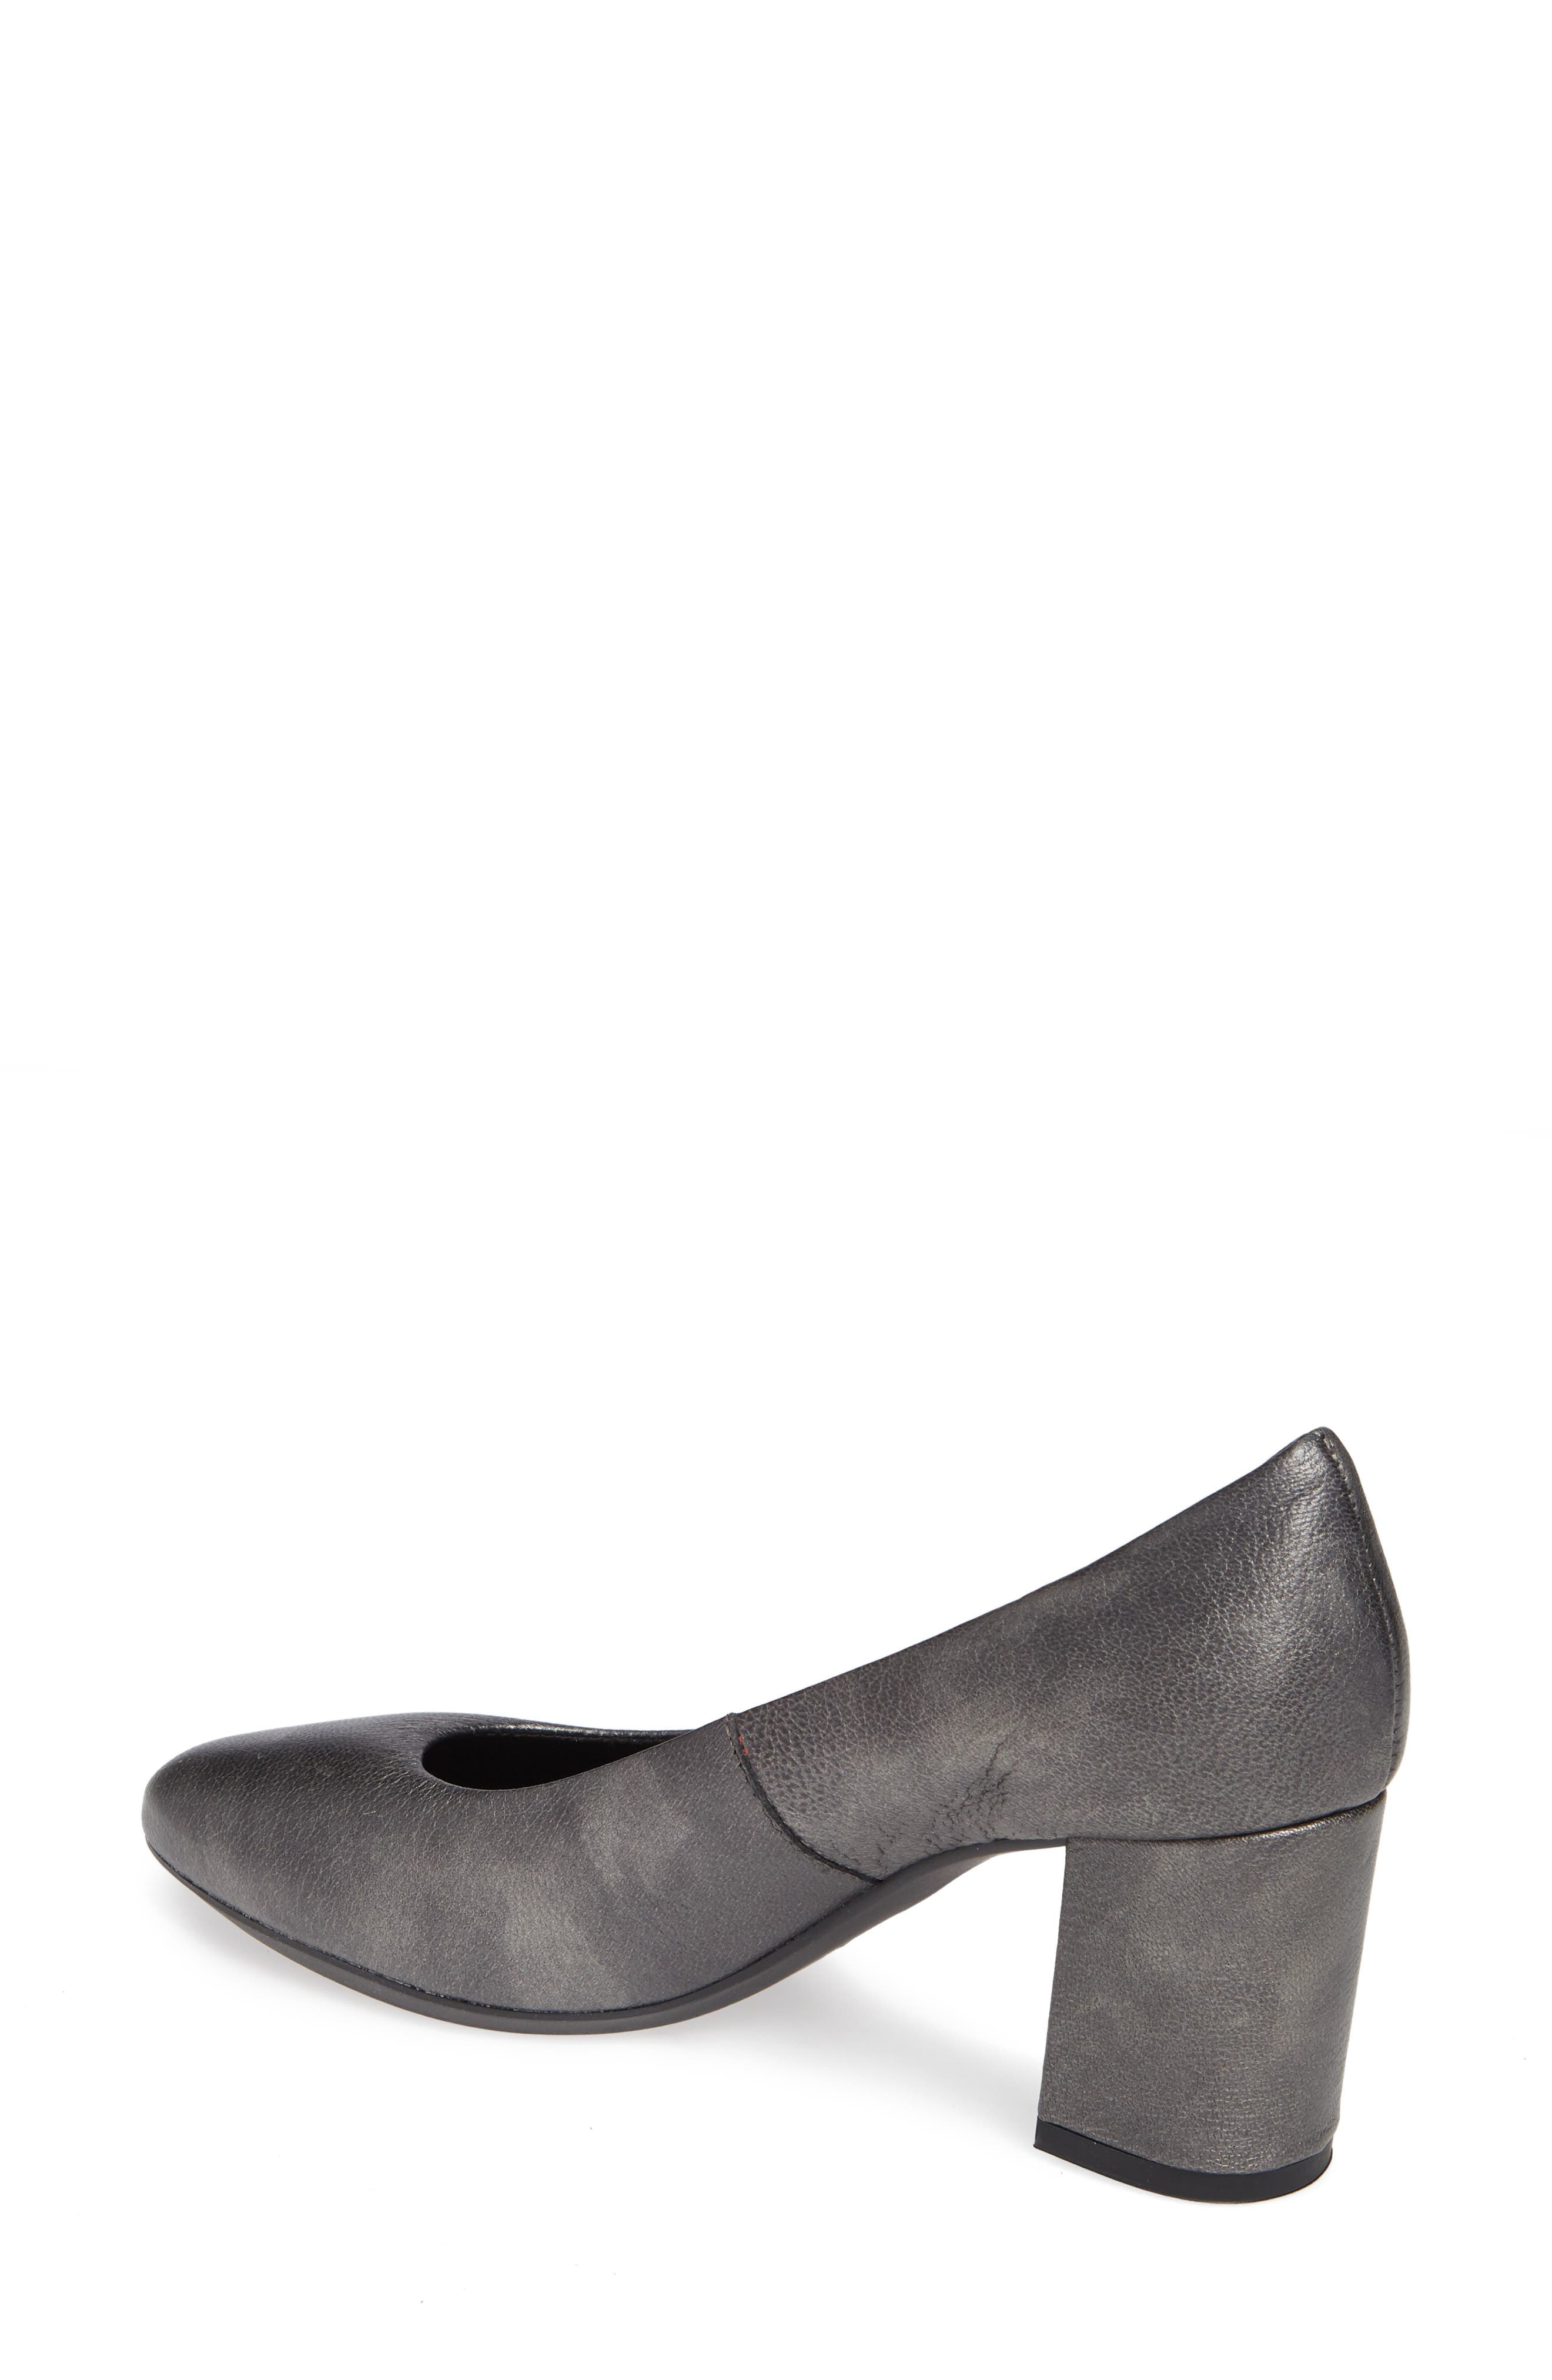 ,                             Seriously Pump,                             Alternate thumbnail 2, color,                             GREY LEATHER